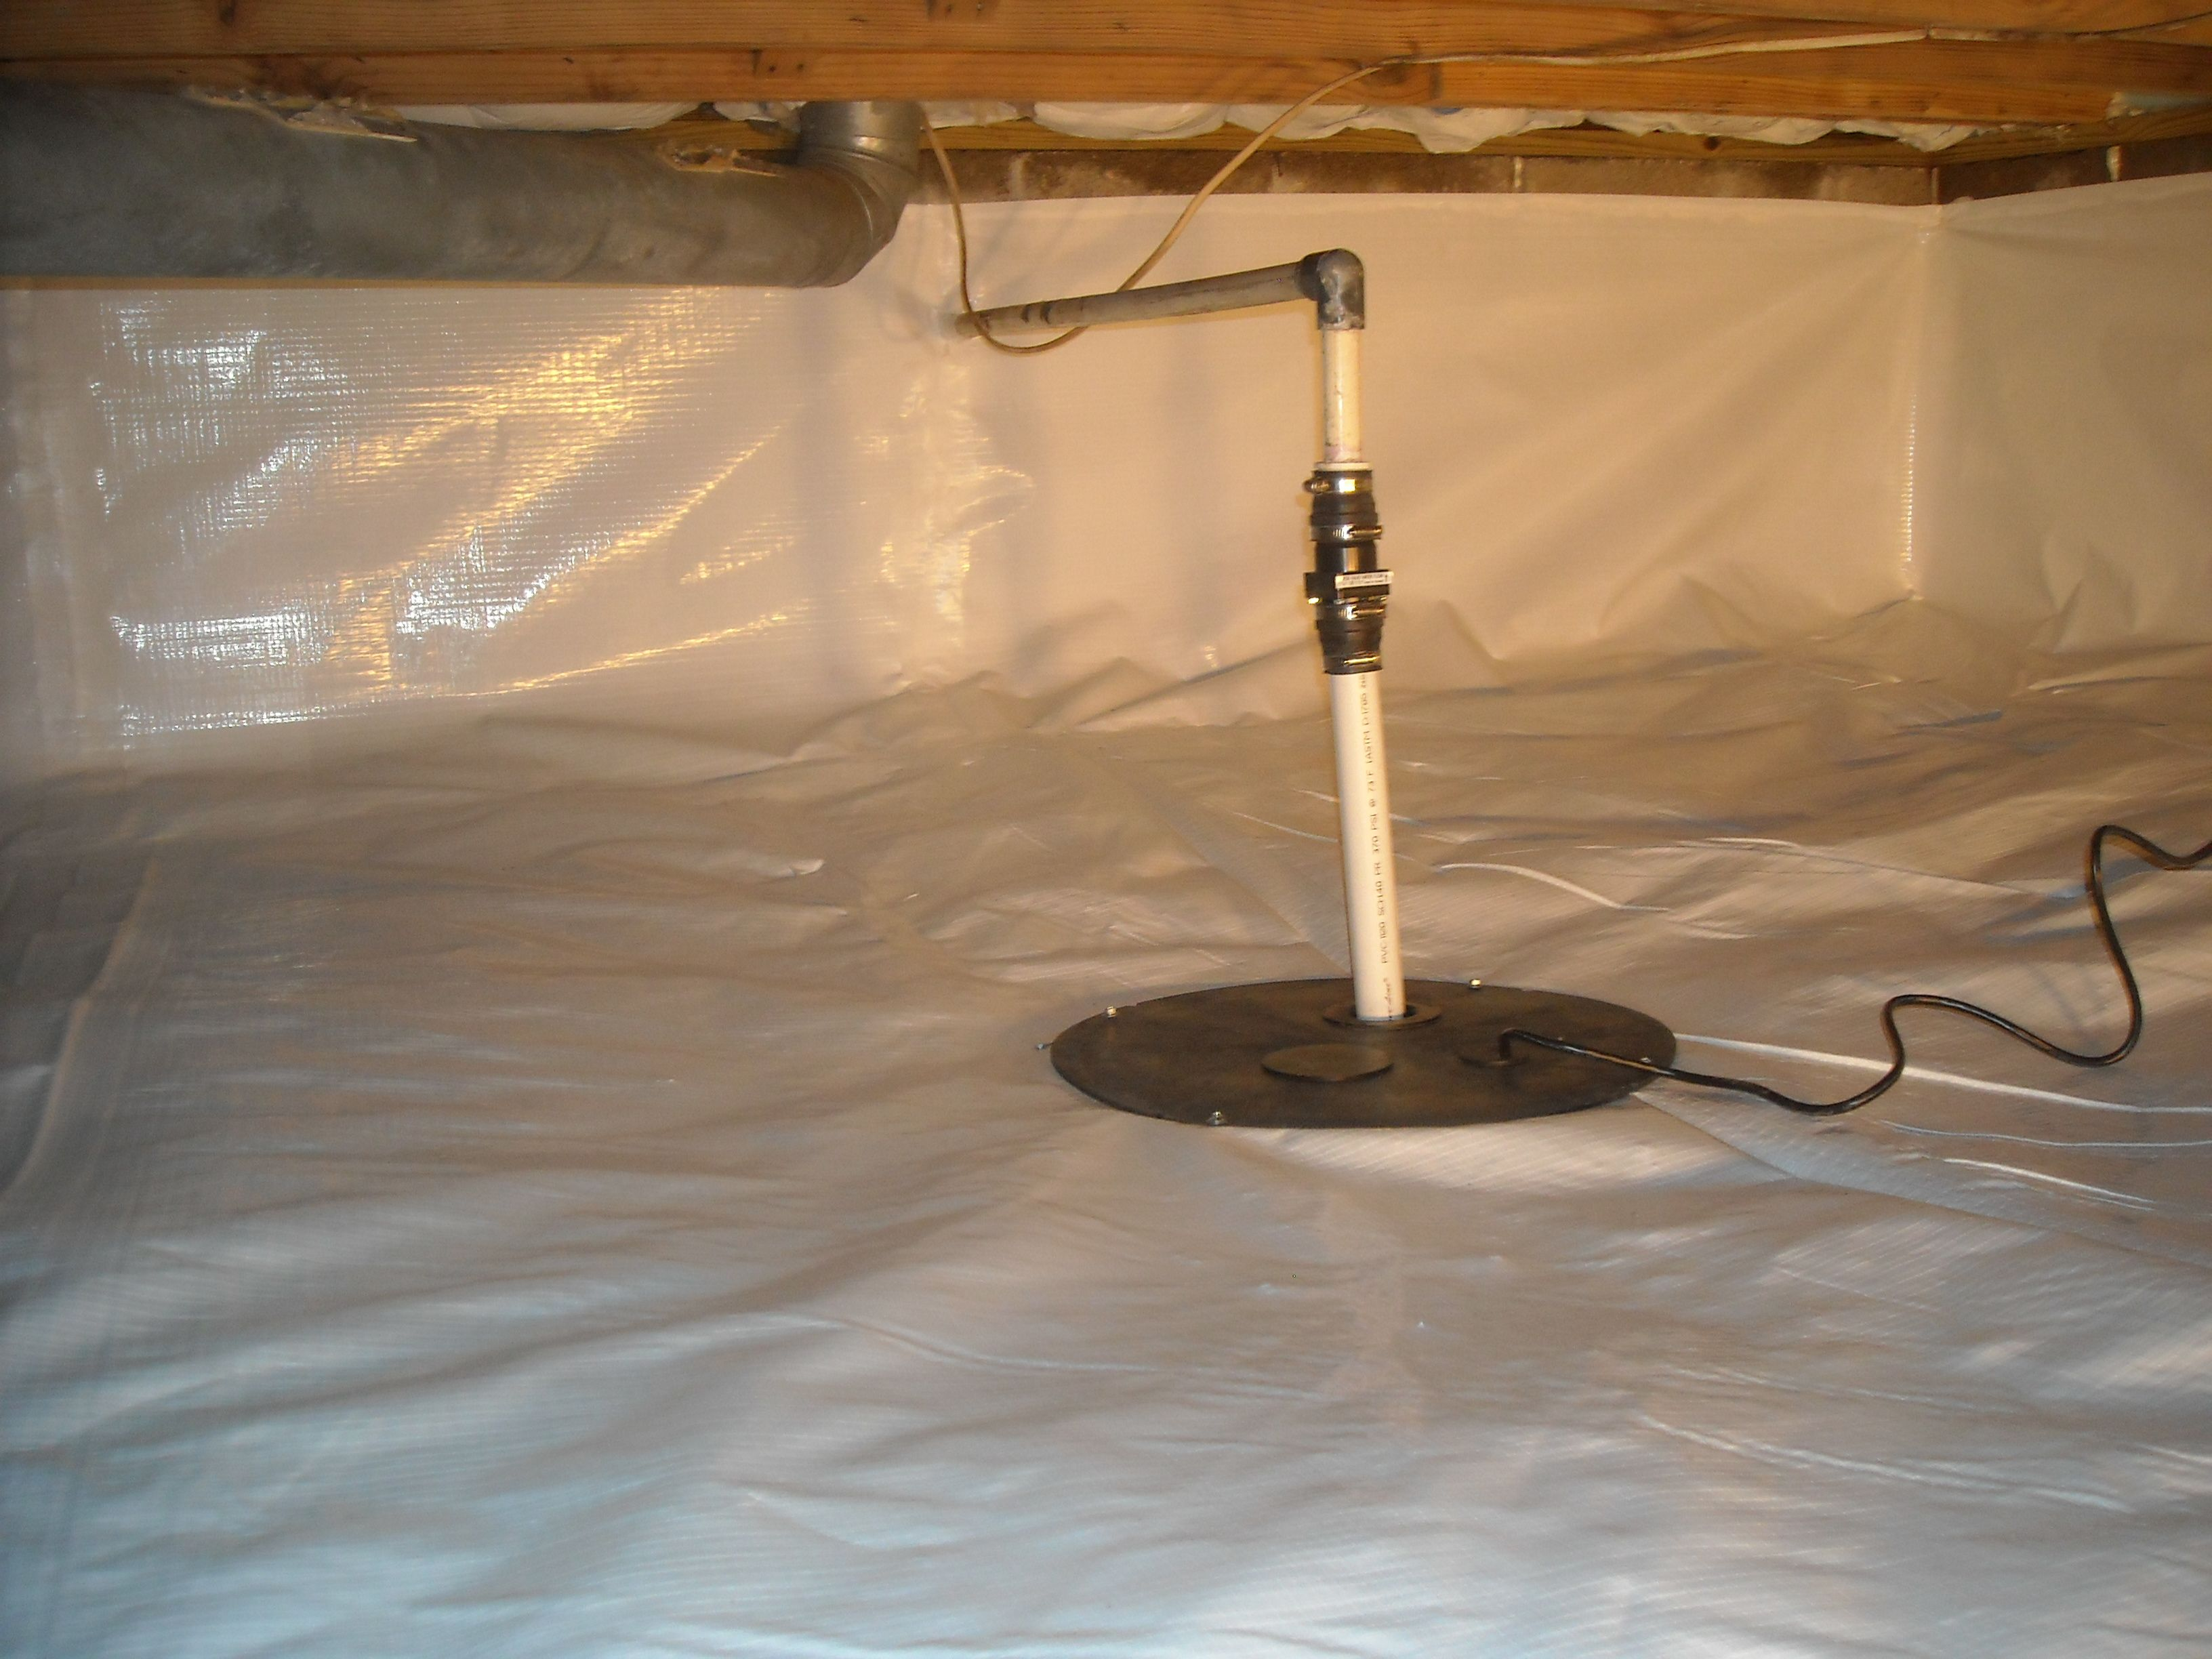 After picture of a sump pump in a crawl space